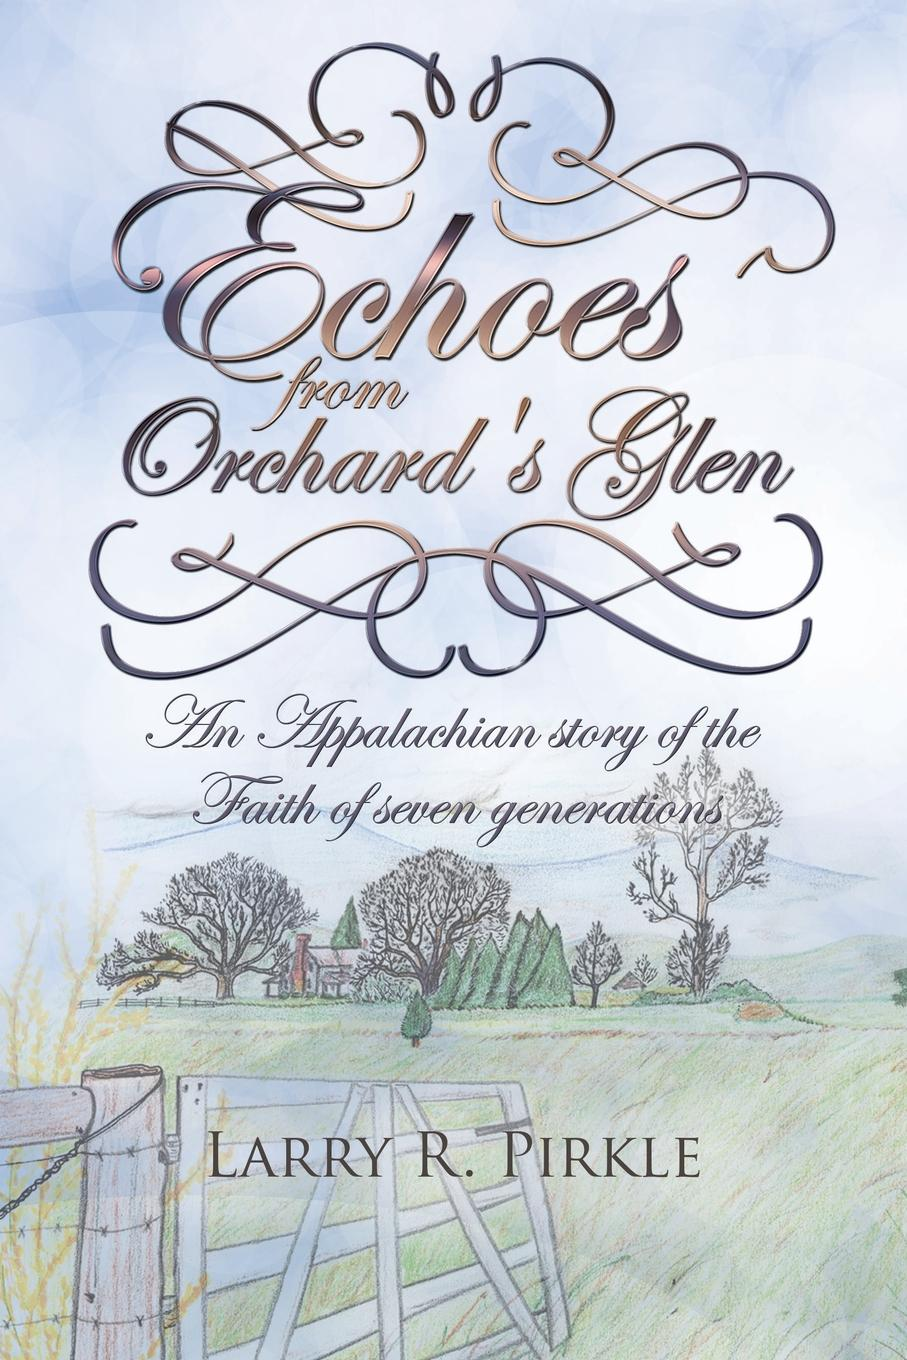 Larry R. Pirkle Echoes from Orchard.s Glen. An Appalachian story of the Faith of seven generations